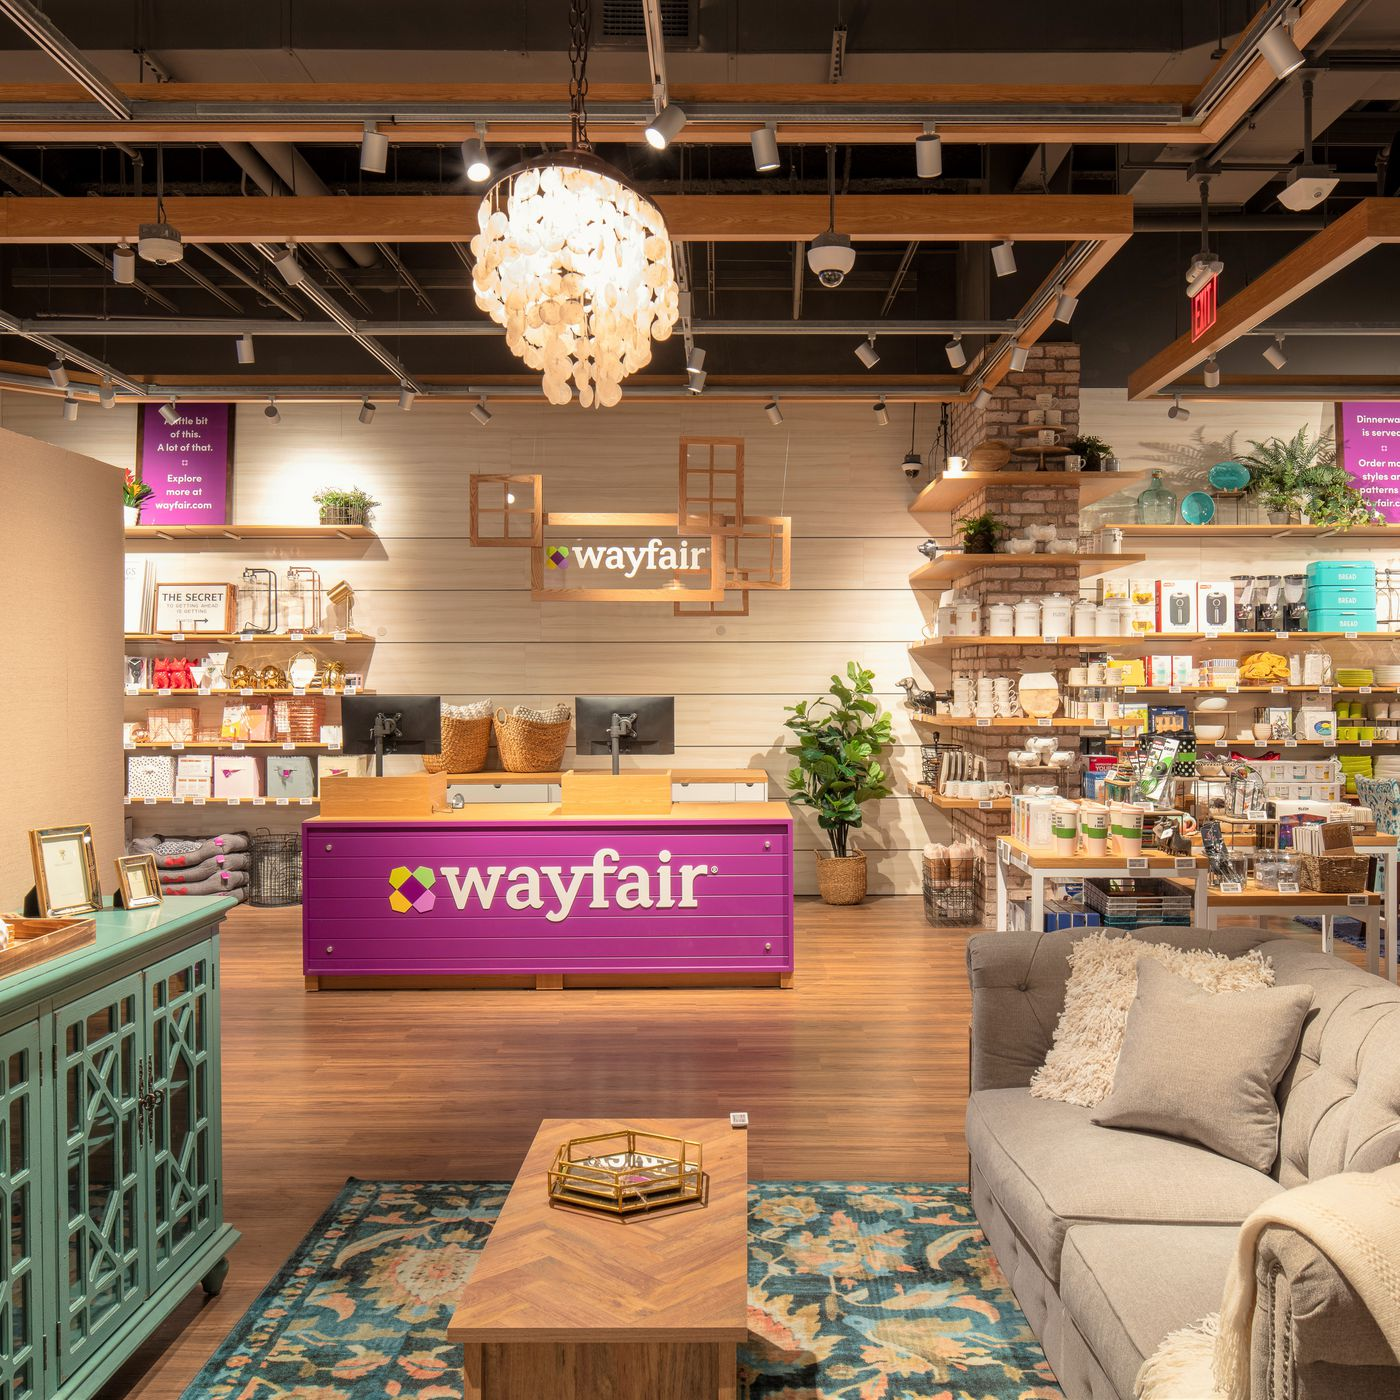 Wayfair Explained The Walkout The Selection And How It Works Vox,Color Code Personality Test Blue